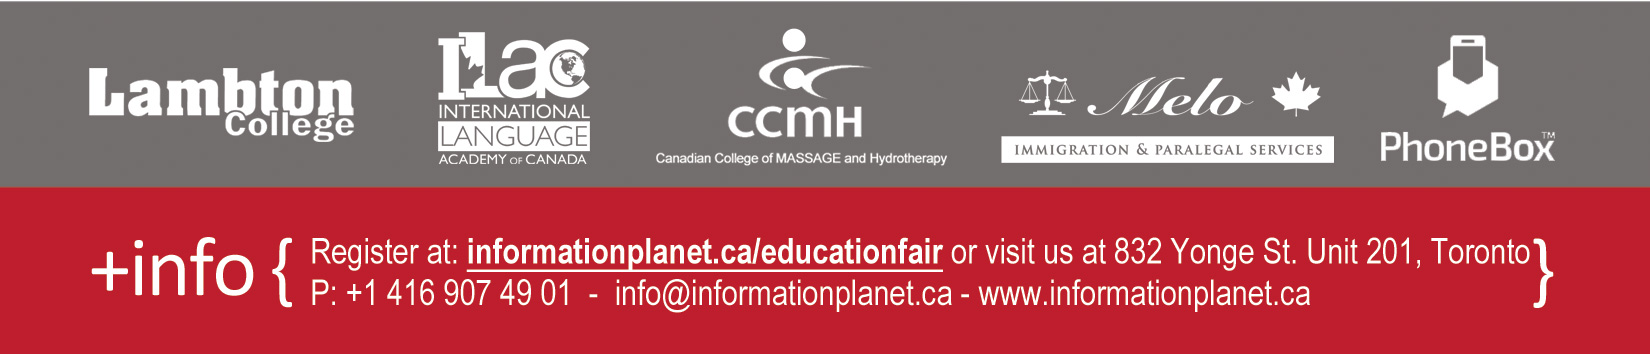 Participating institutions: Lambton College - ILAC - CCMH - Melo Immigration